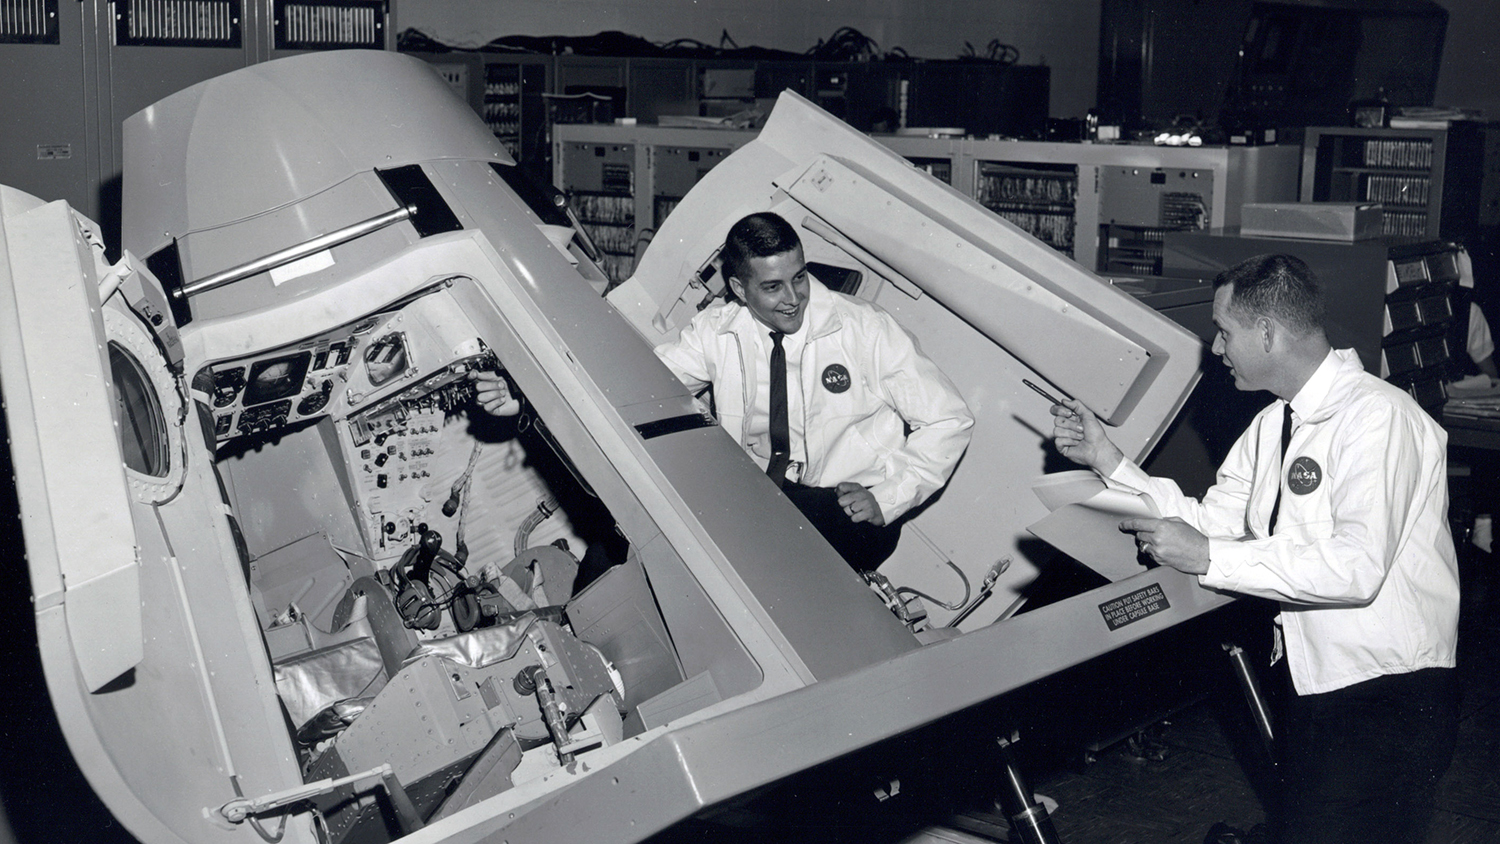 Jim Prim and George Prude pose in the Gemini Trainer used in the Apollo 11 mission.